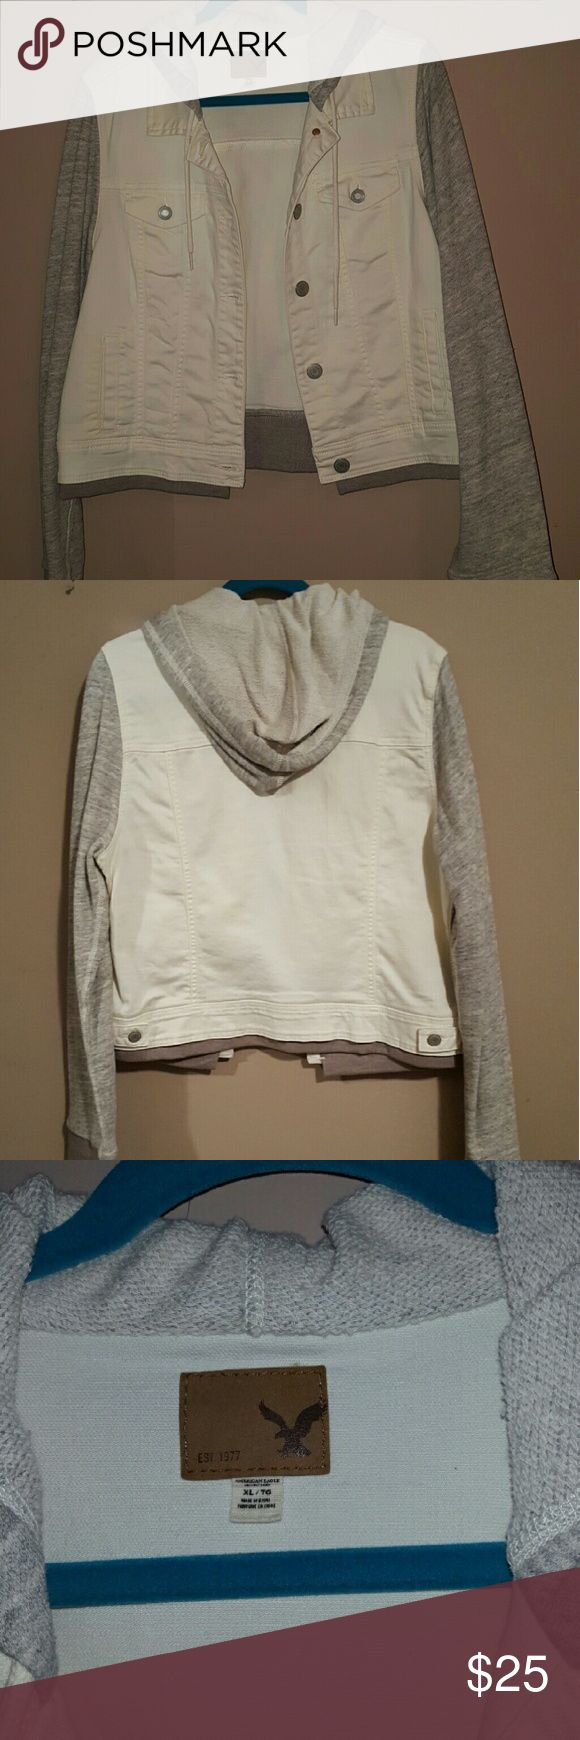 American Eagle jean jacket White jean jacket with heather grey sleeves & hood. Size XL. No stains/discoloration, only wore a handful of times. Very comfortable & cozy! American Eagle Outfitters Jackets & Coats Jean Jackets